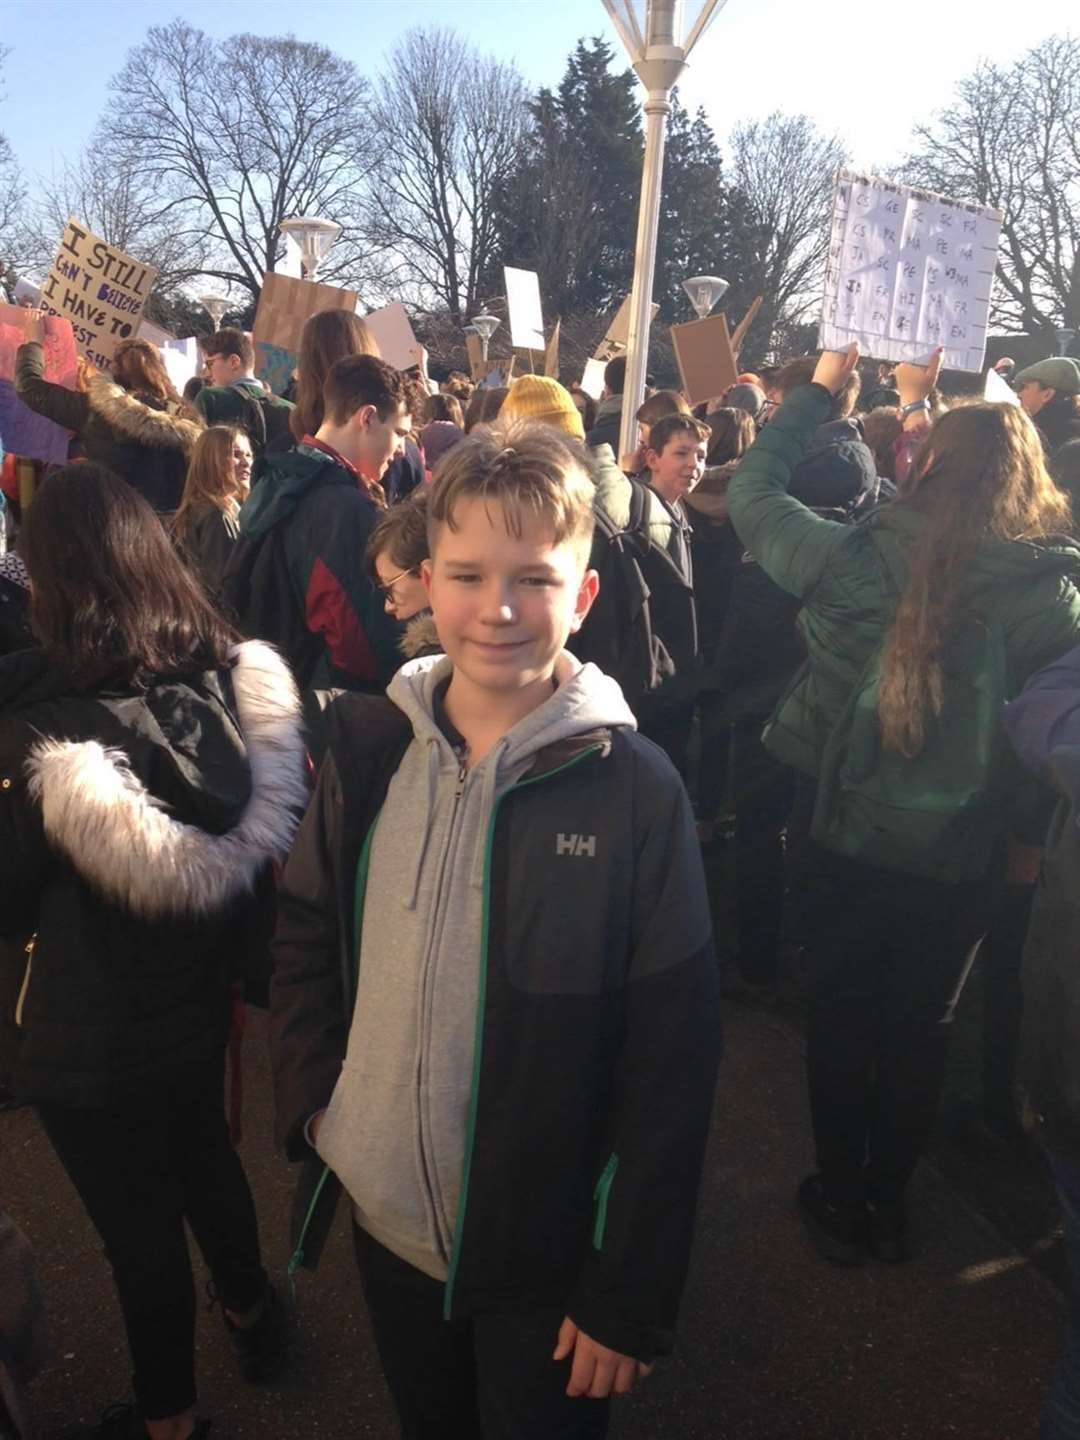 YouthStrike4Climte 1 Jona David author (7483499)